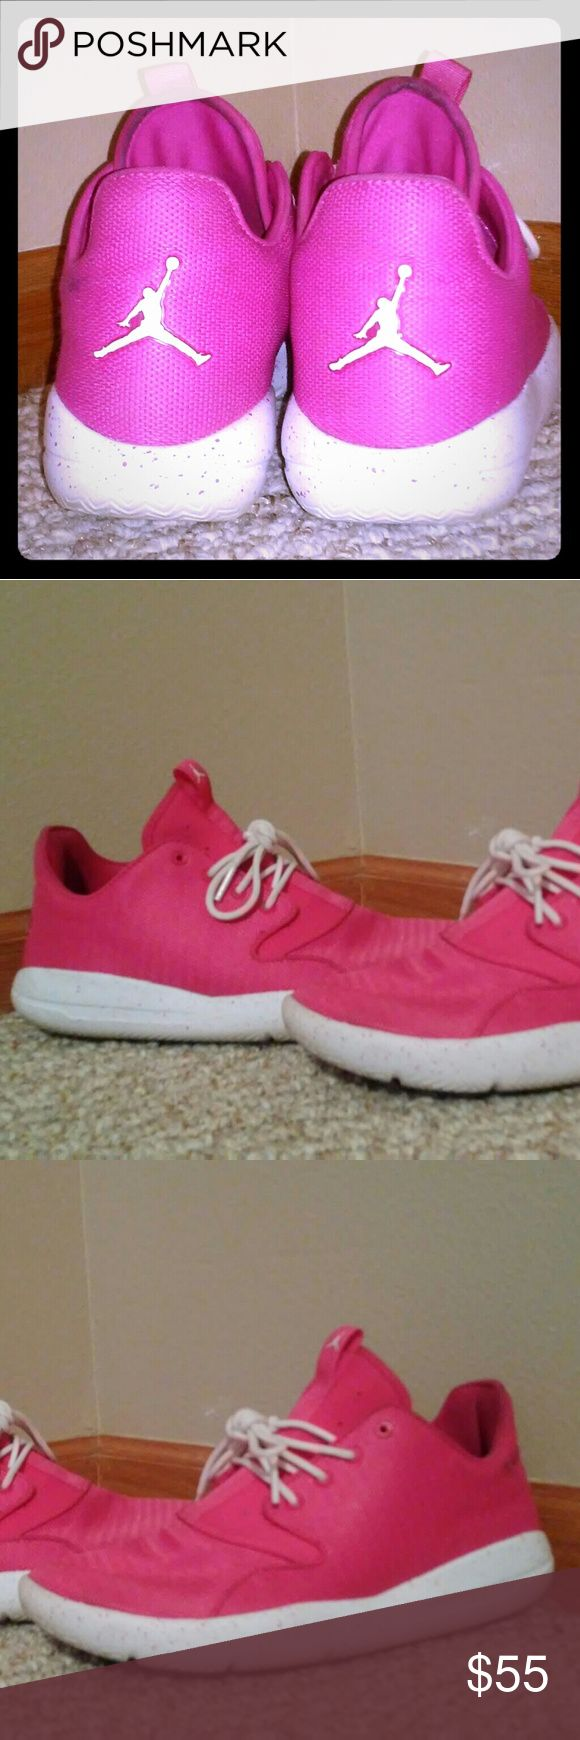 Pink & White Jordans! Very good condition. Barely worn. Will cleaned them up when they are bought. These are in youth size. Let me know if you have any questions. Jordan Shoes Athletic Shoes